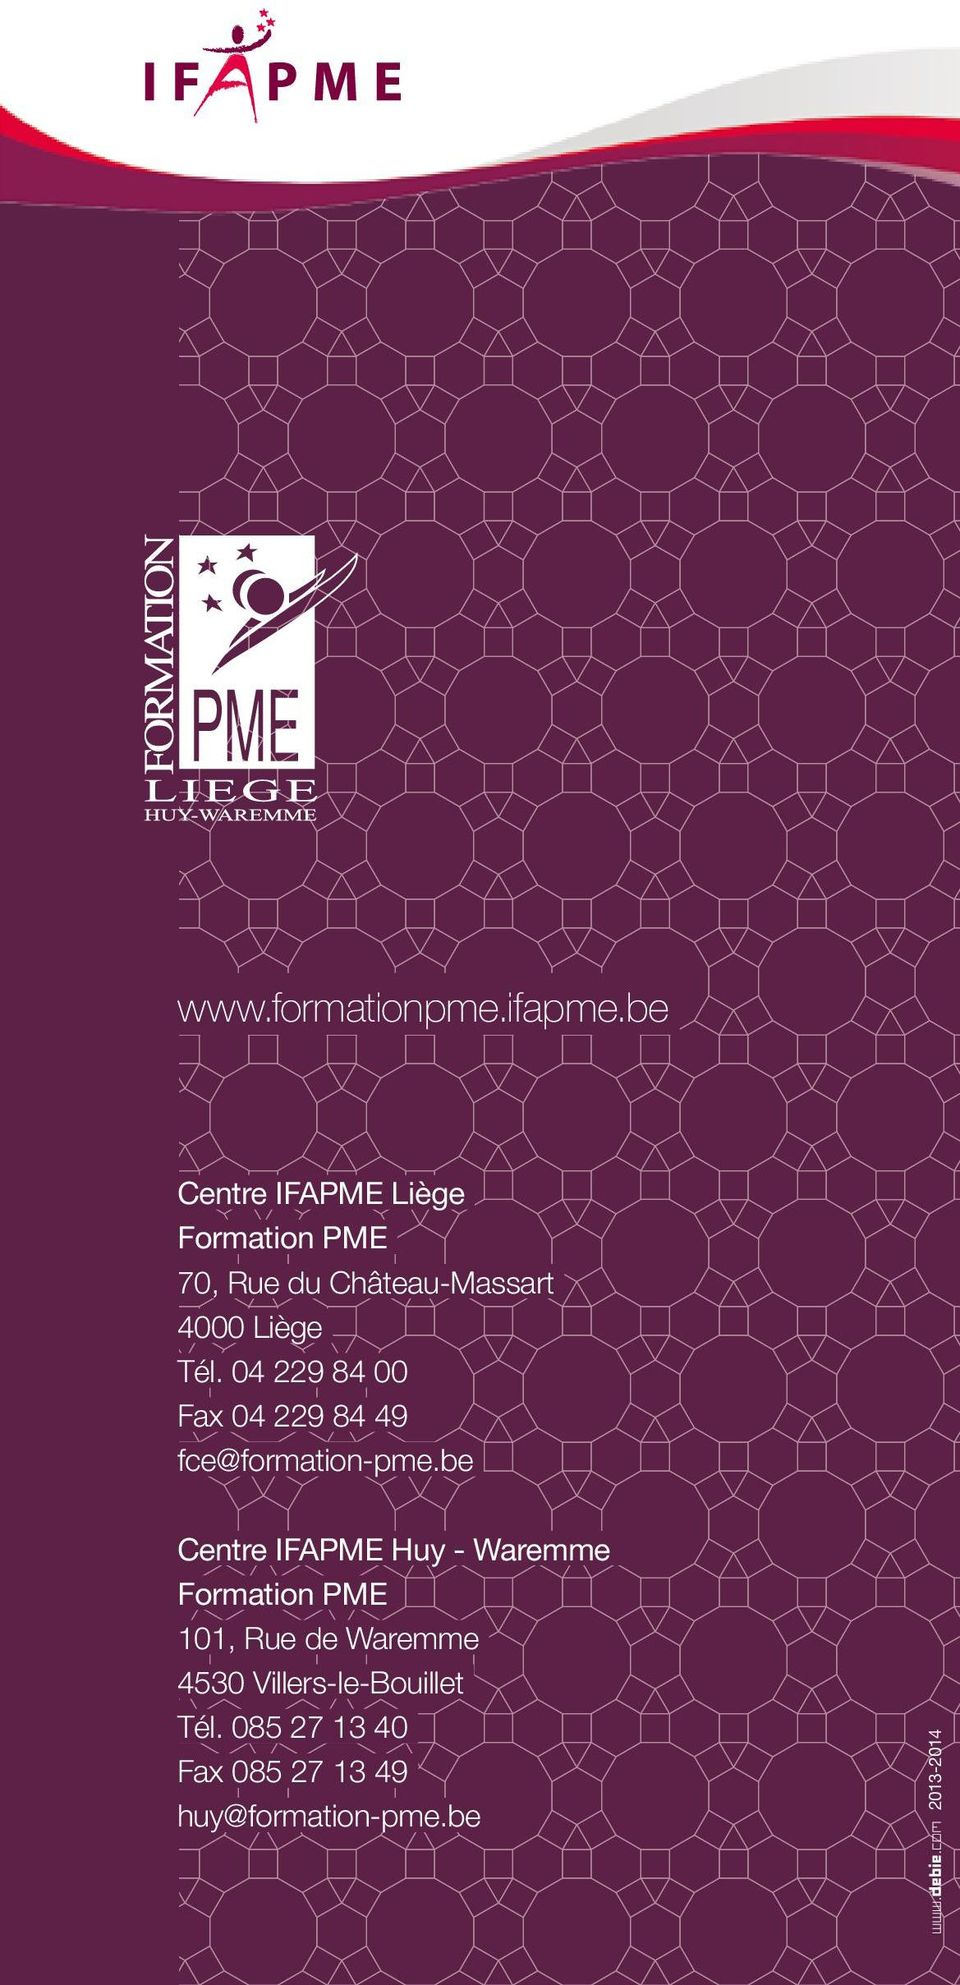 be Centre IFAPME Huy - Waremme Formation PME 101, Rue de Waremme 4530